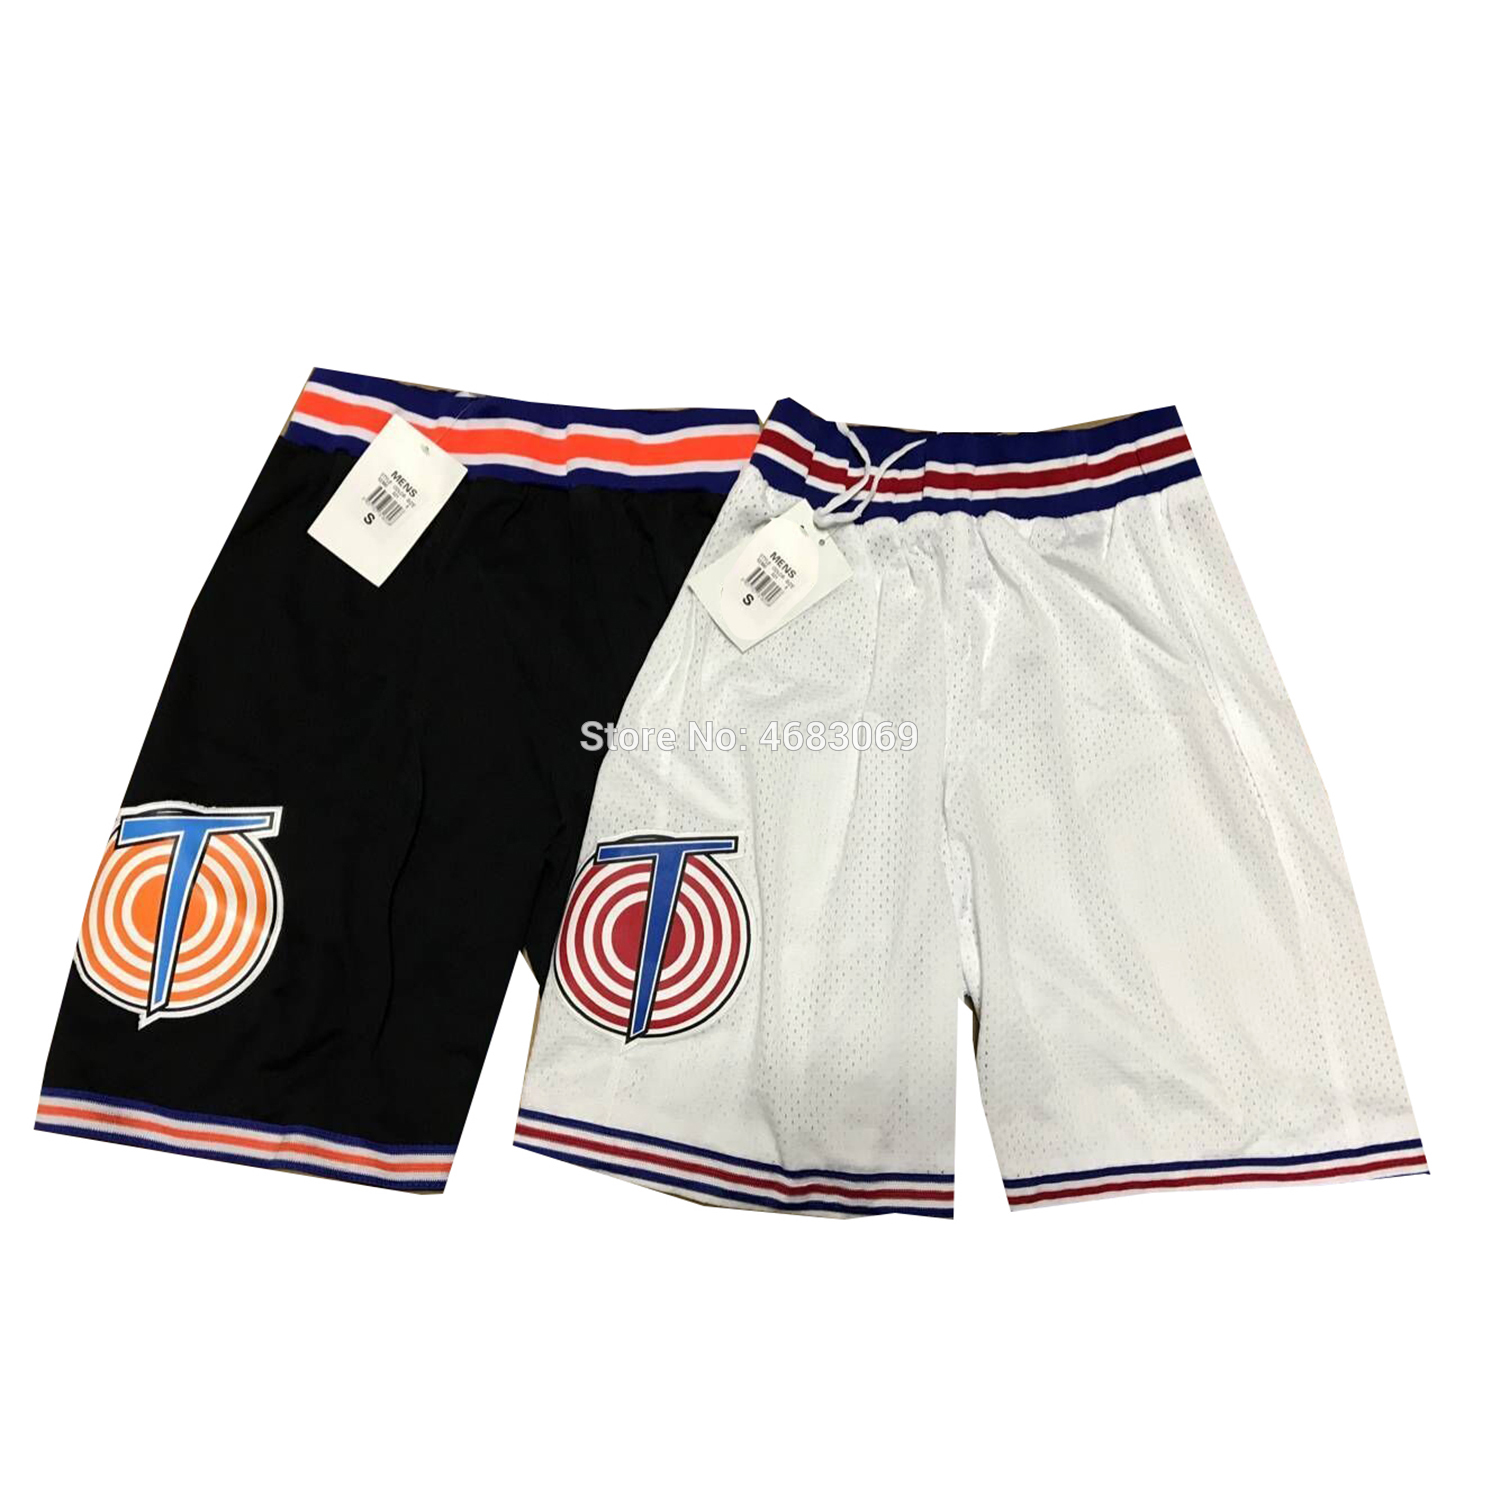 Costume Space Shorts Movie Tune Squad JORDAN LOLA BUNNY BUGS BUNNY White Black Color Basketball Short S M L XL US STOCK